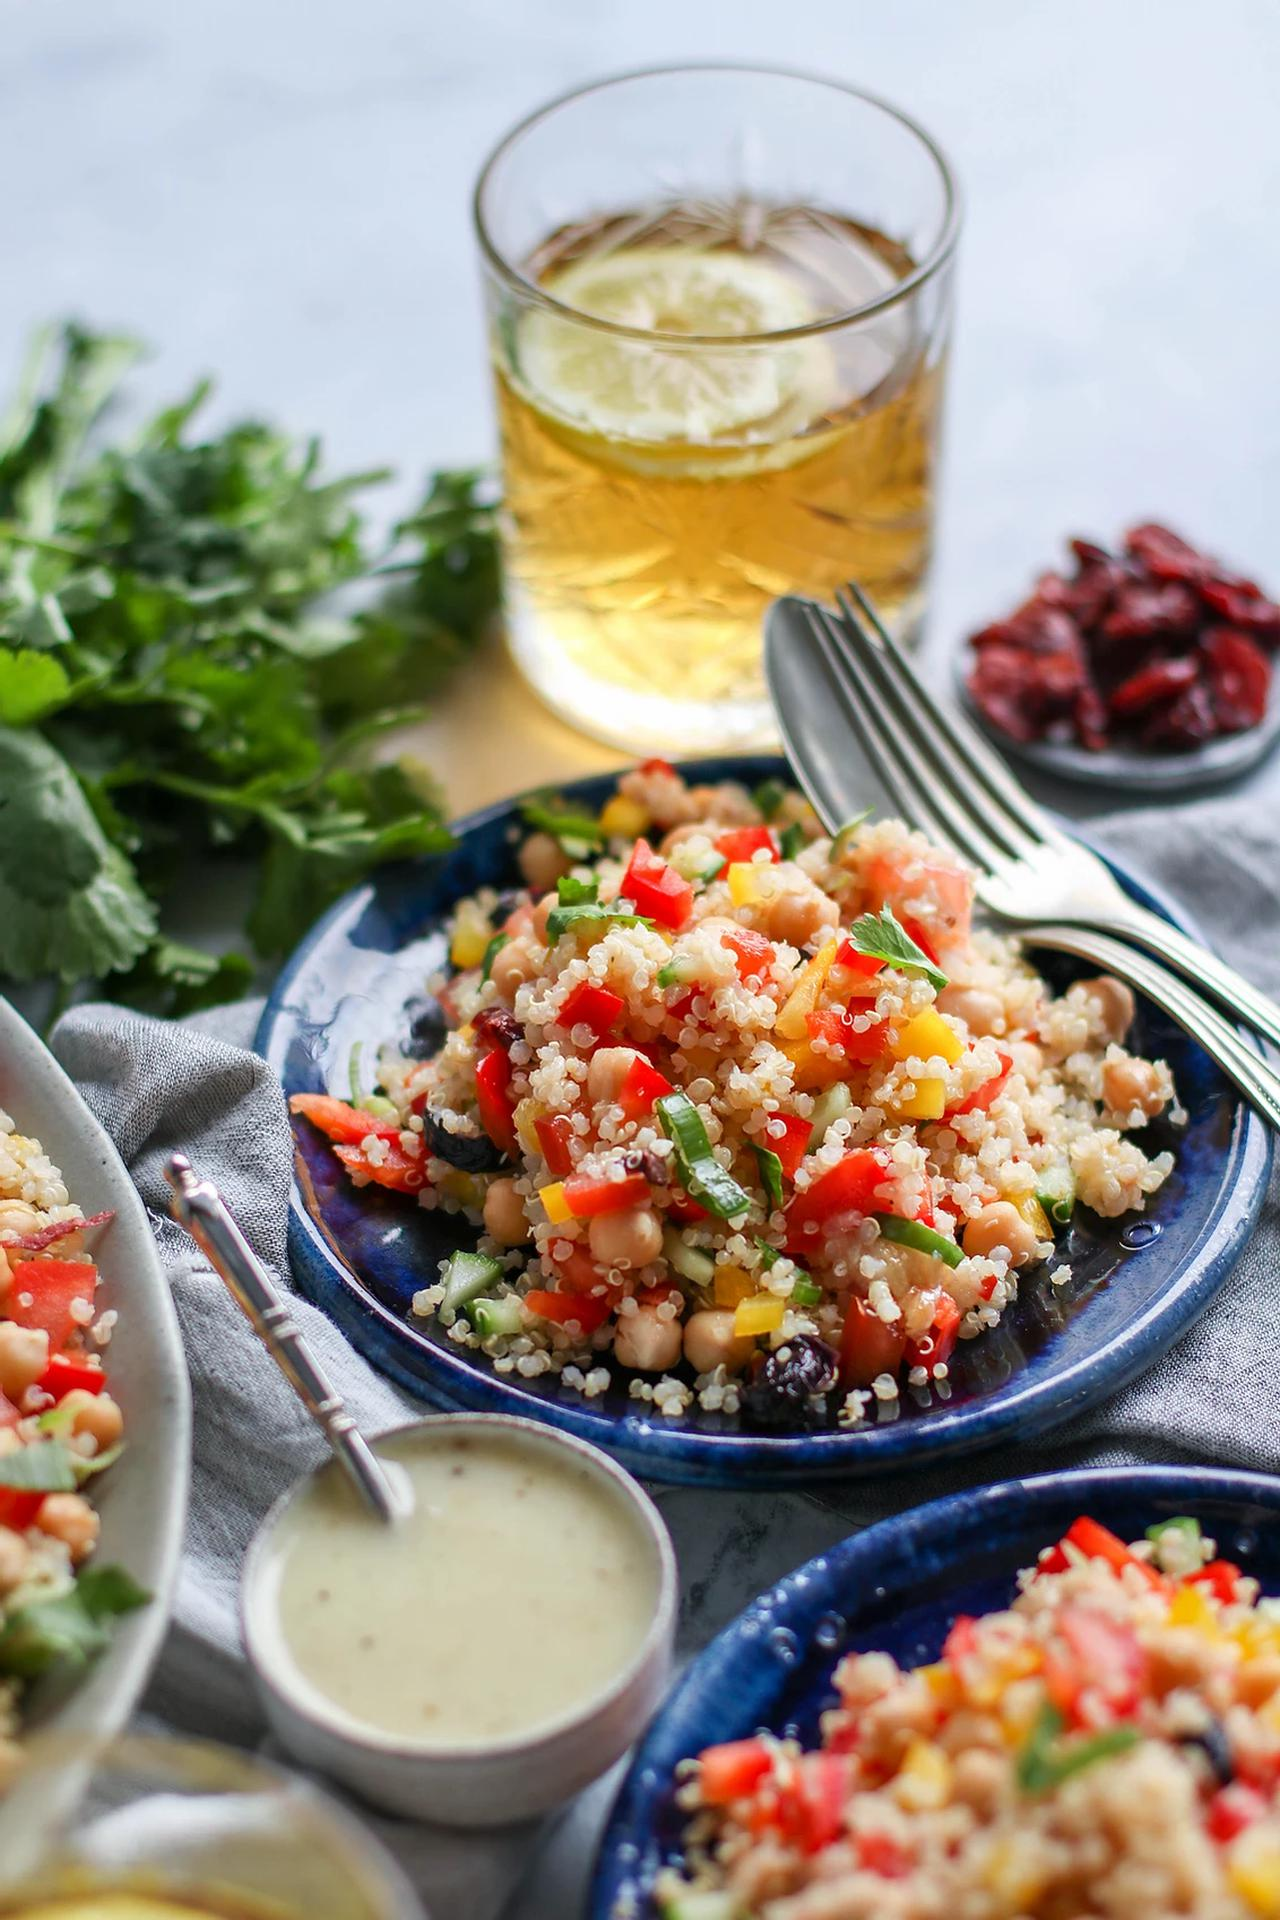 Main image of Quinoa Salad with Roasted Garlic Dressing